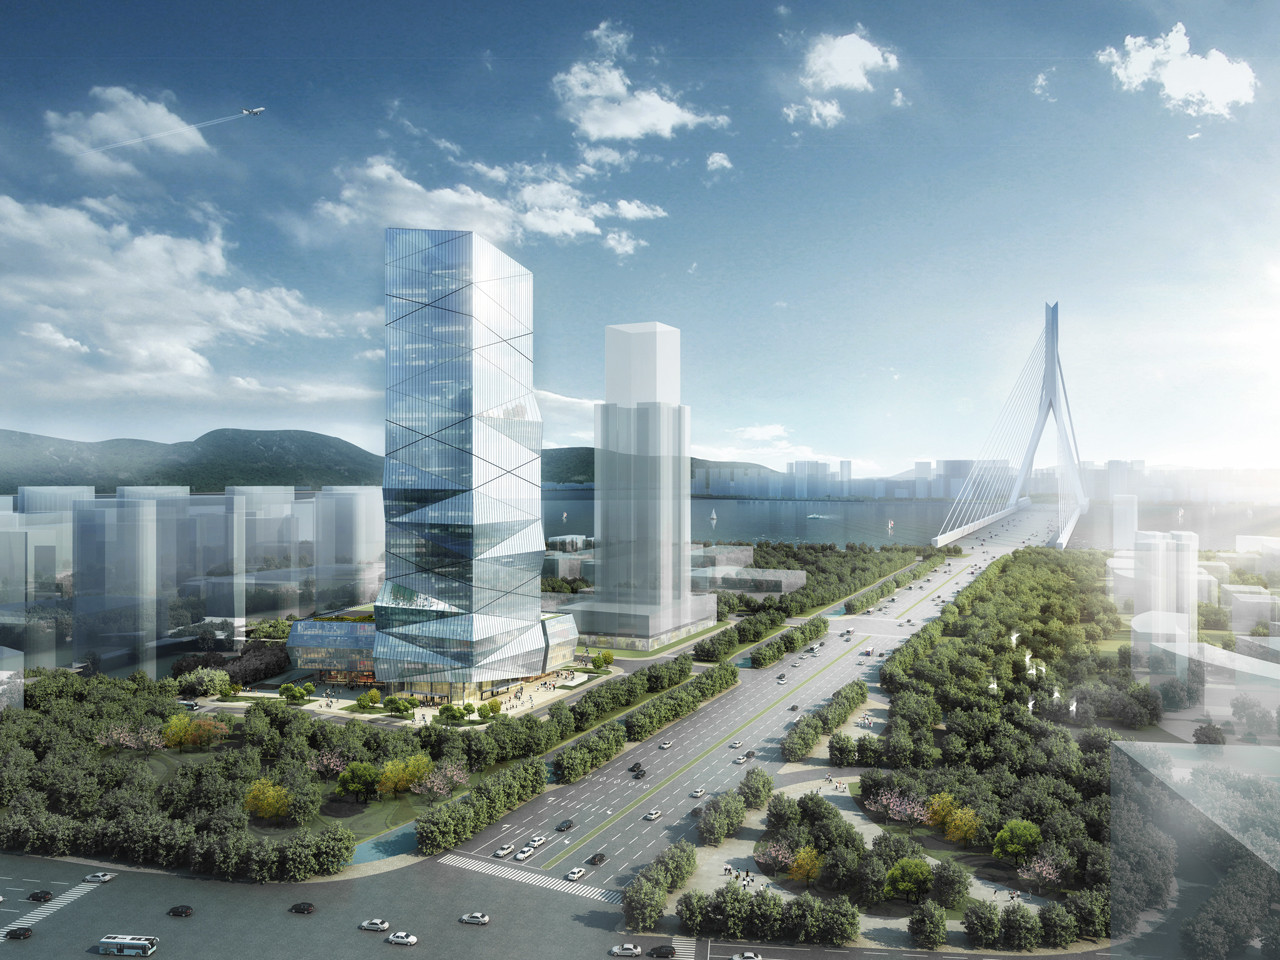 HENN Wins Competition to Design Wenzhou High-Rise, © HENN